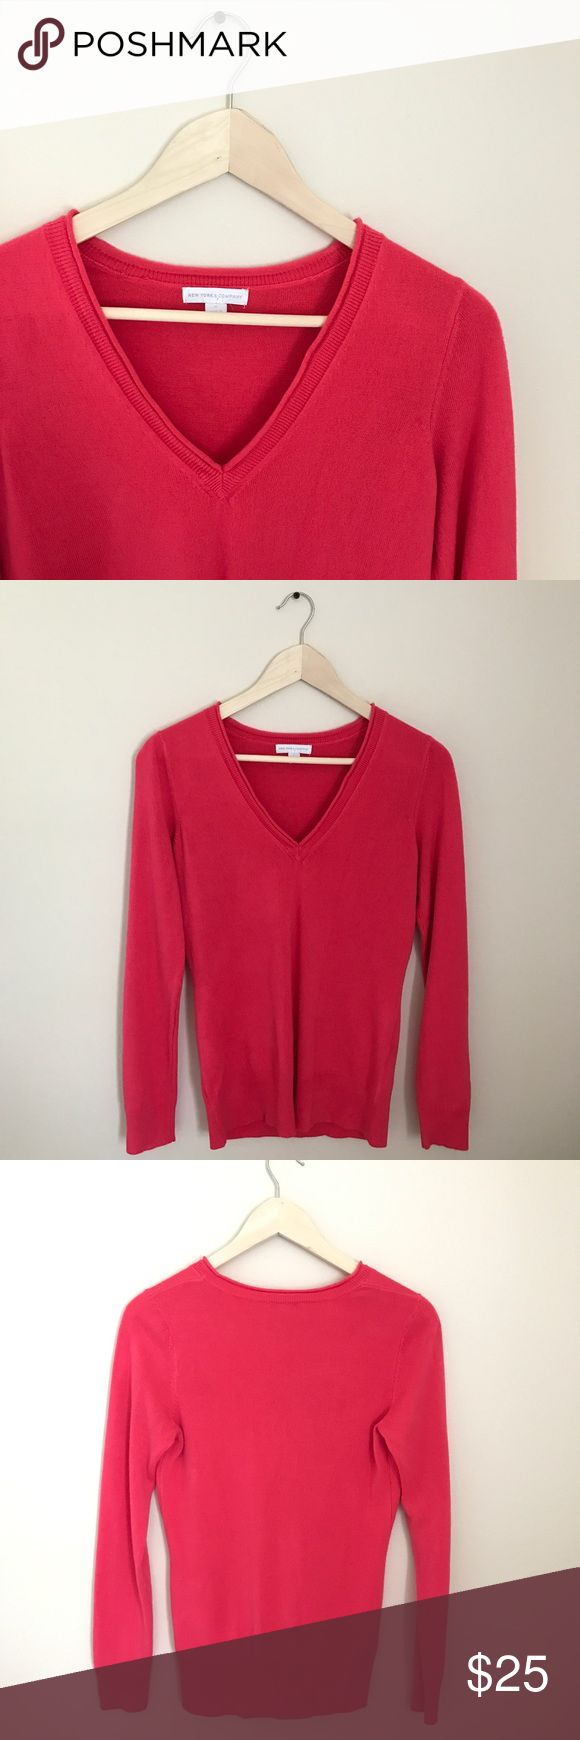 Comfy Fall Sweater This super soft NY & Co sweater is perfect for pumpkin picking season! Pair with a pleated skirt or your fave skinny jeans for a breezy latte date! EUC New York & Company Tops